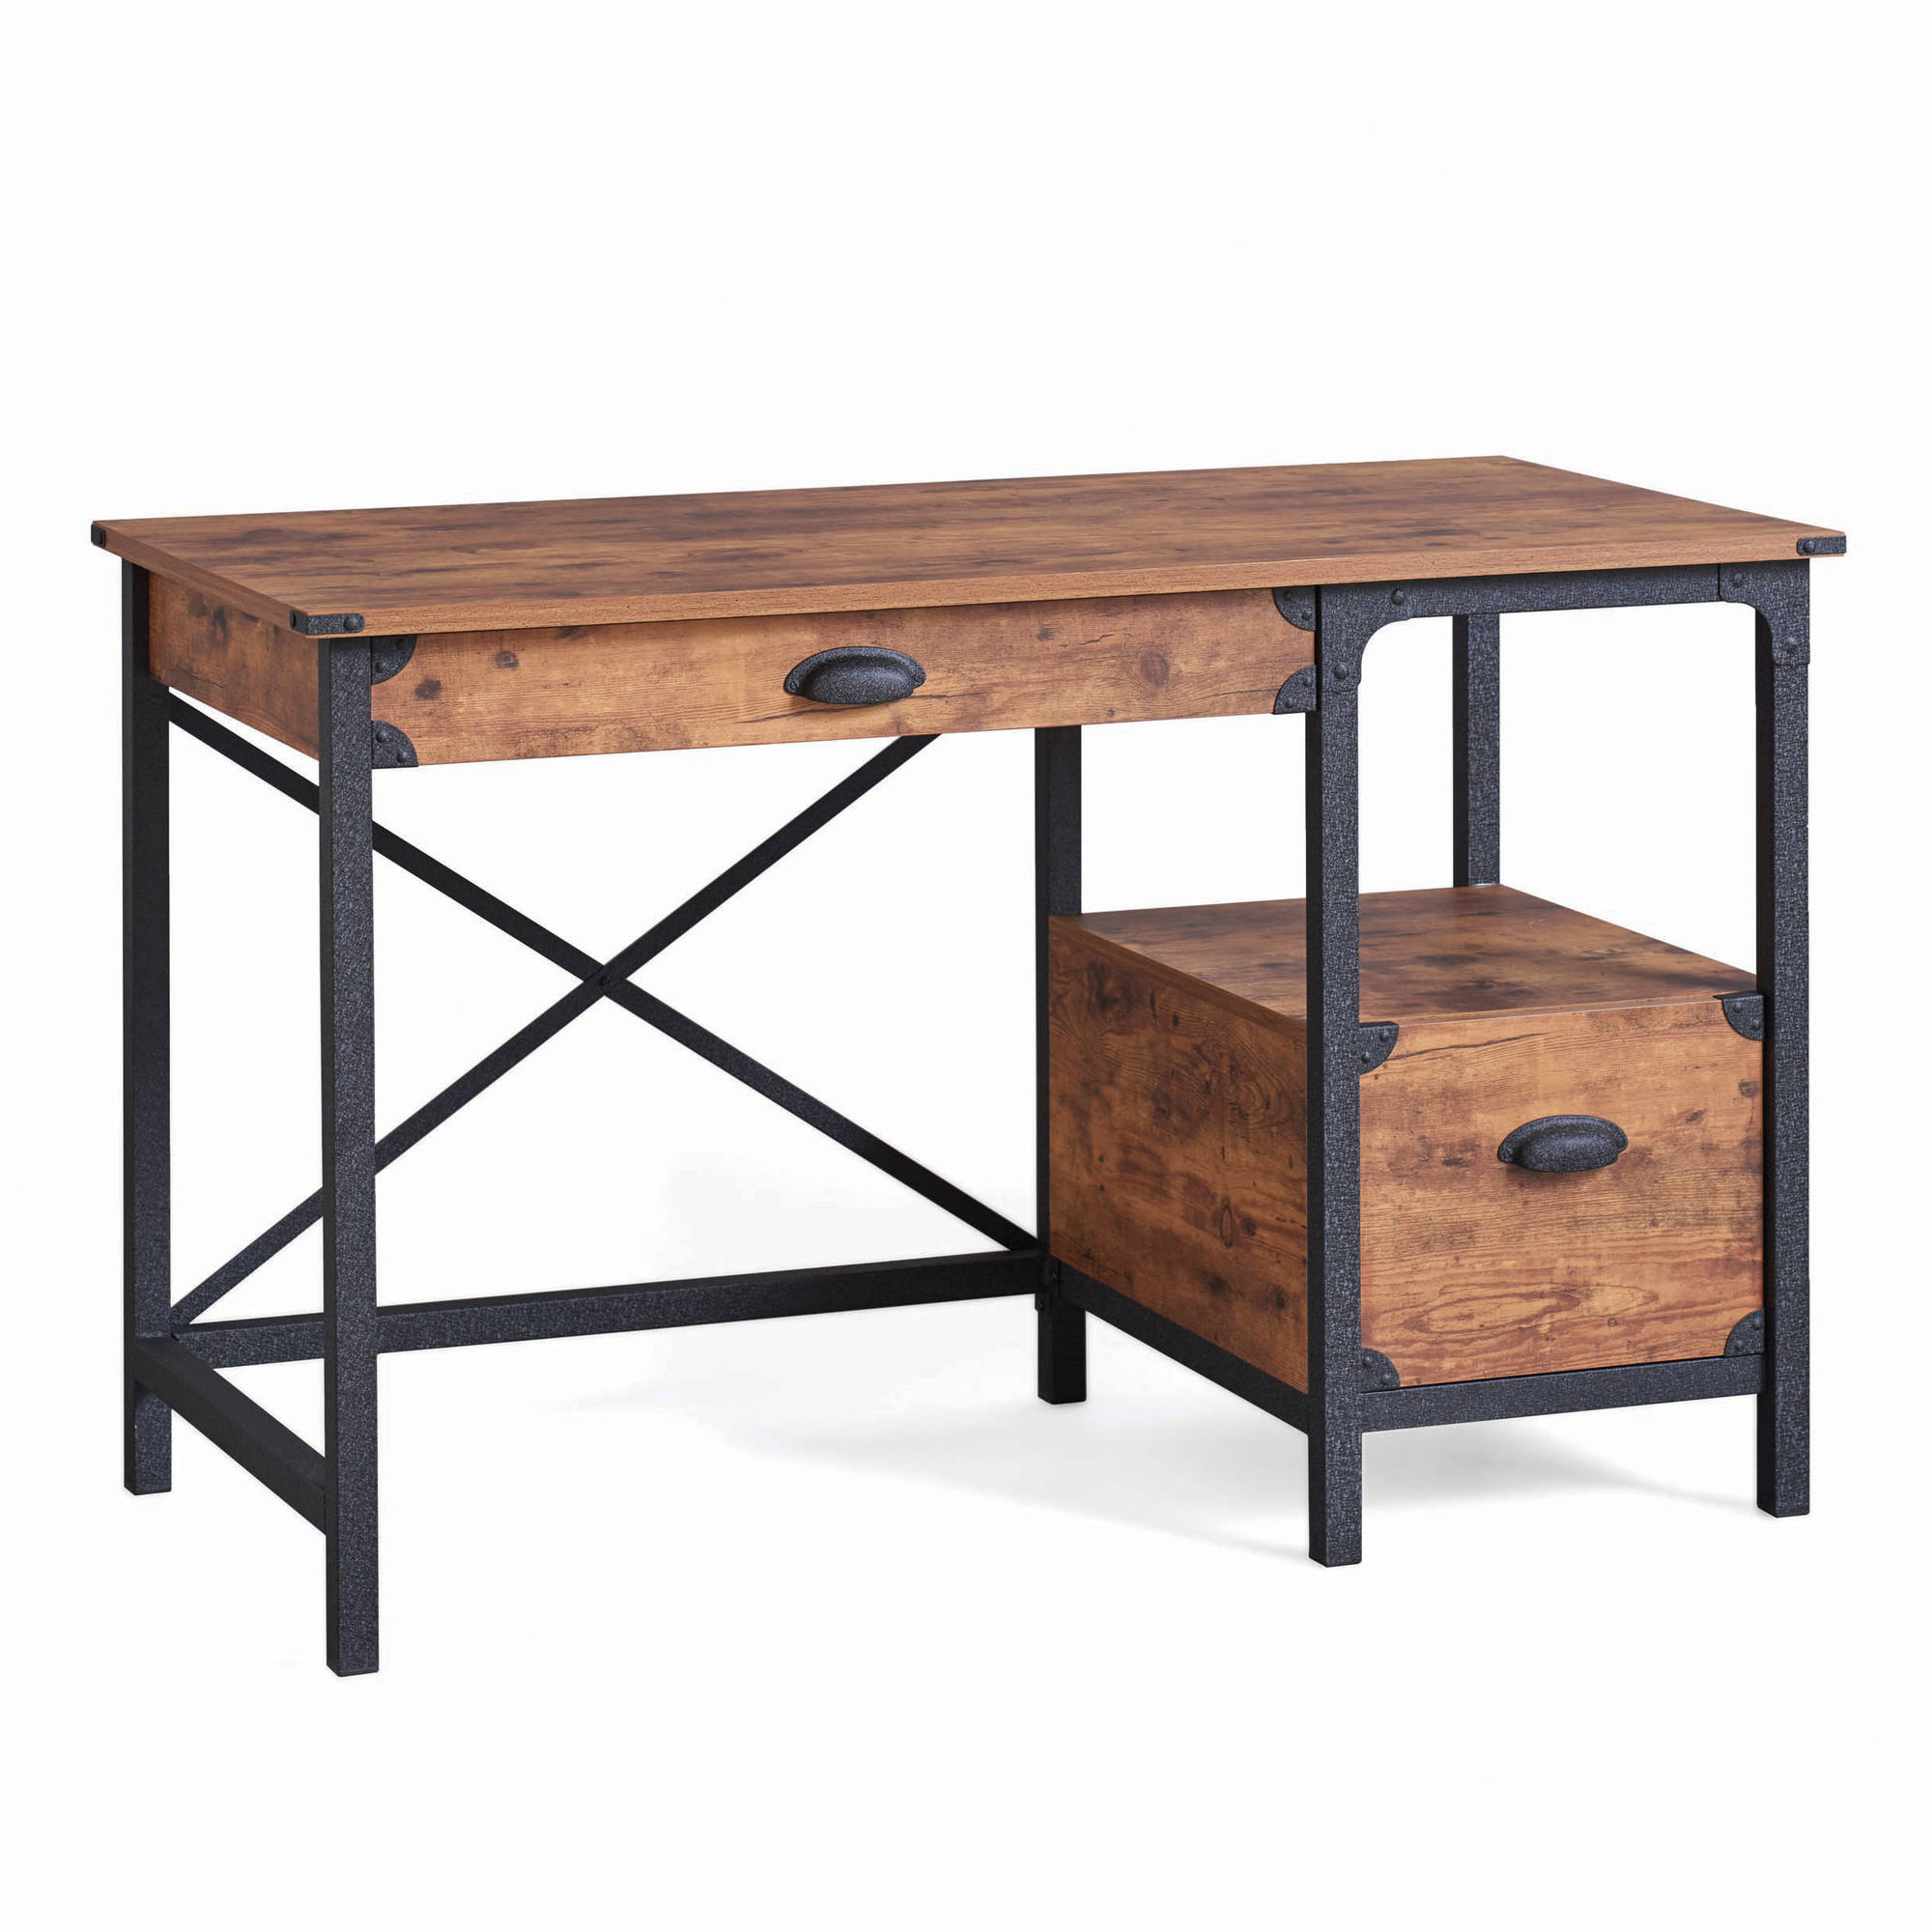 Attirant Better Homes U0026 Gardens Rustic Country Desk, Weathered Pine Finish